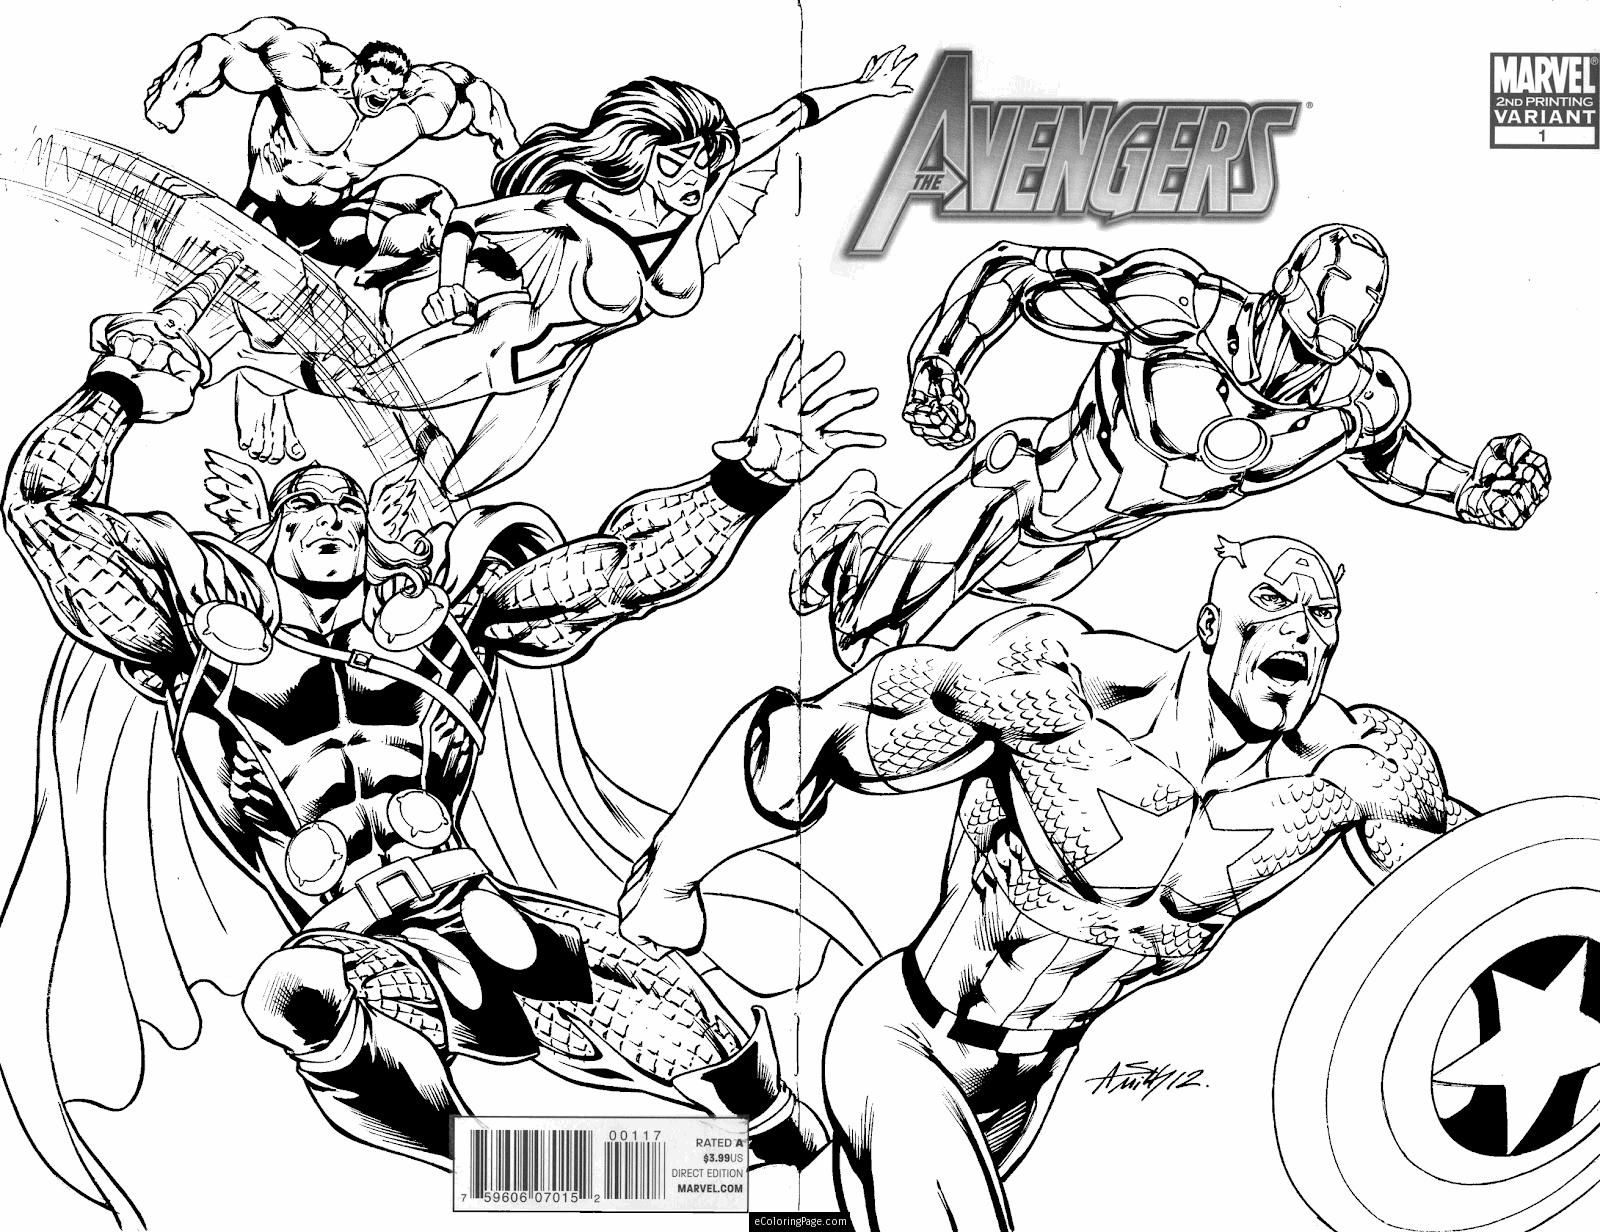 Avengers Coloring Pages Superhero Coloring Pages Avengers Coloring Superhero Coloring